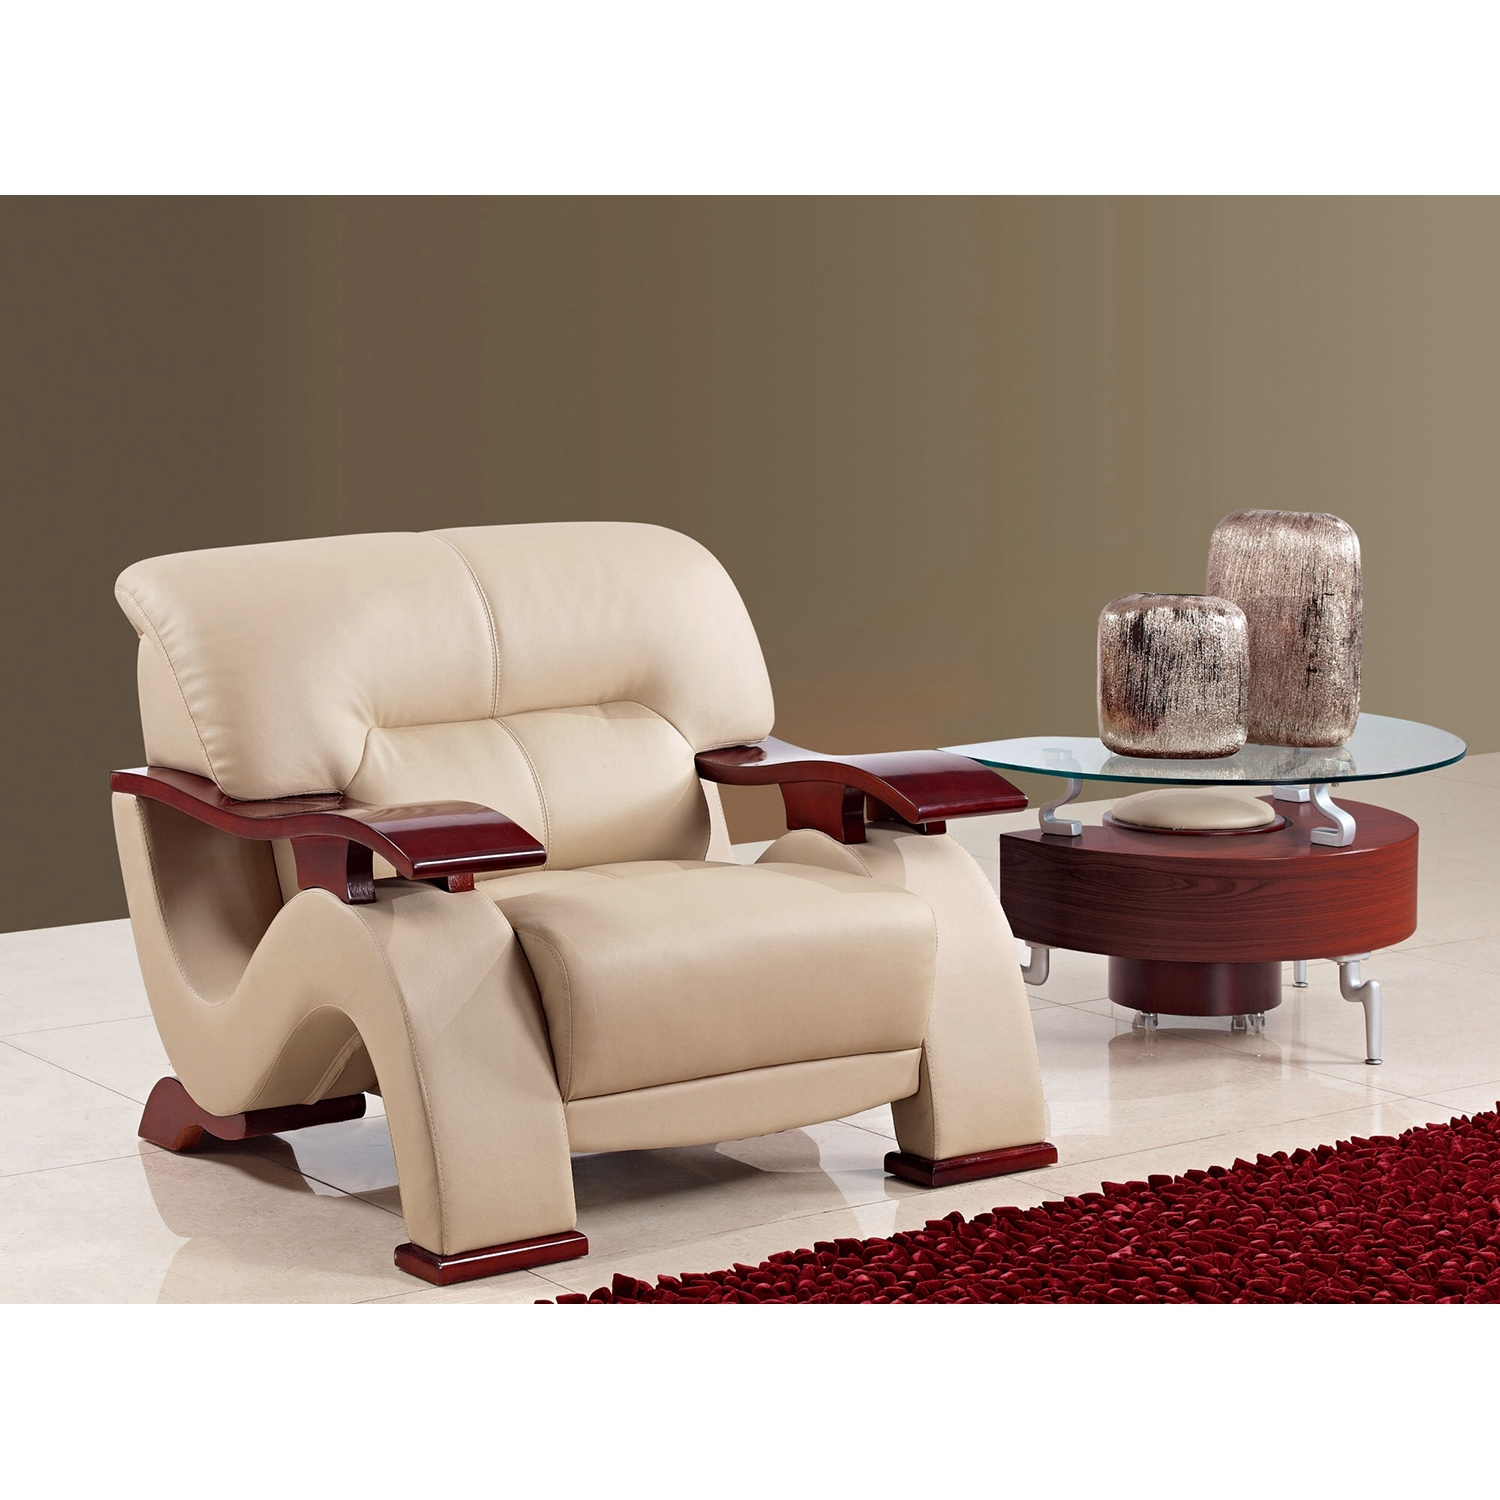 ... Valerie Bonded Leather Sofa Set In Cappuccino Upholstery With Mahogany  Legs   GLO U2033  ...